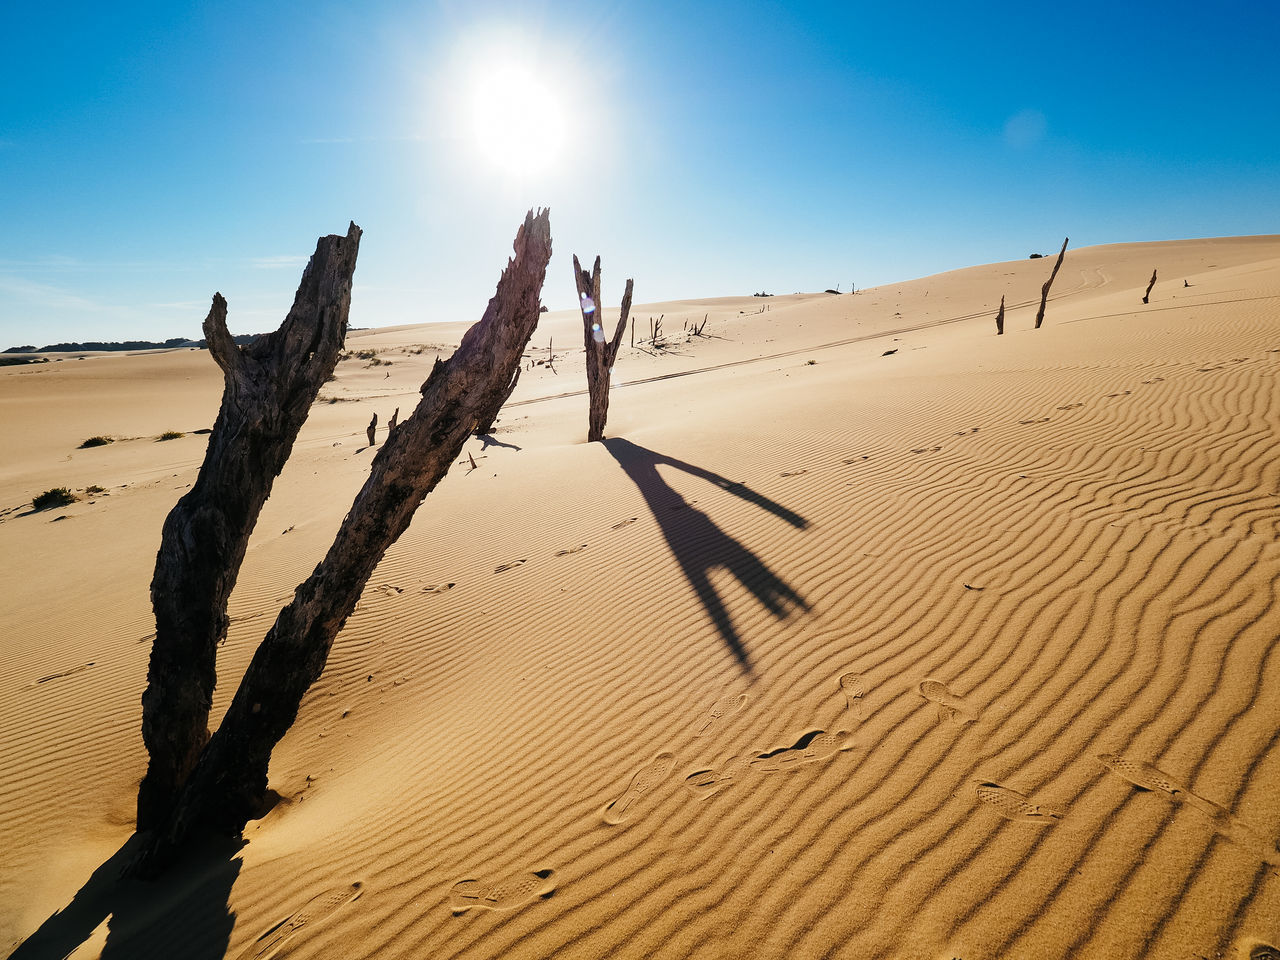 Arid Arid Climate Beach Beauty In Nature Day Desert Empty Epic Isolated Landscape Lonely Nature No People Outdoors Sand Sand Dune Sky Sun Sunlight Vast